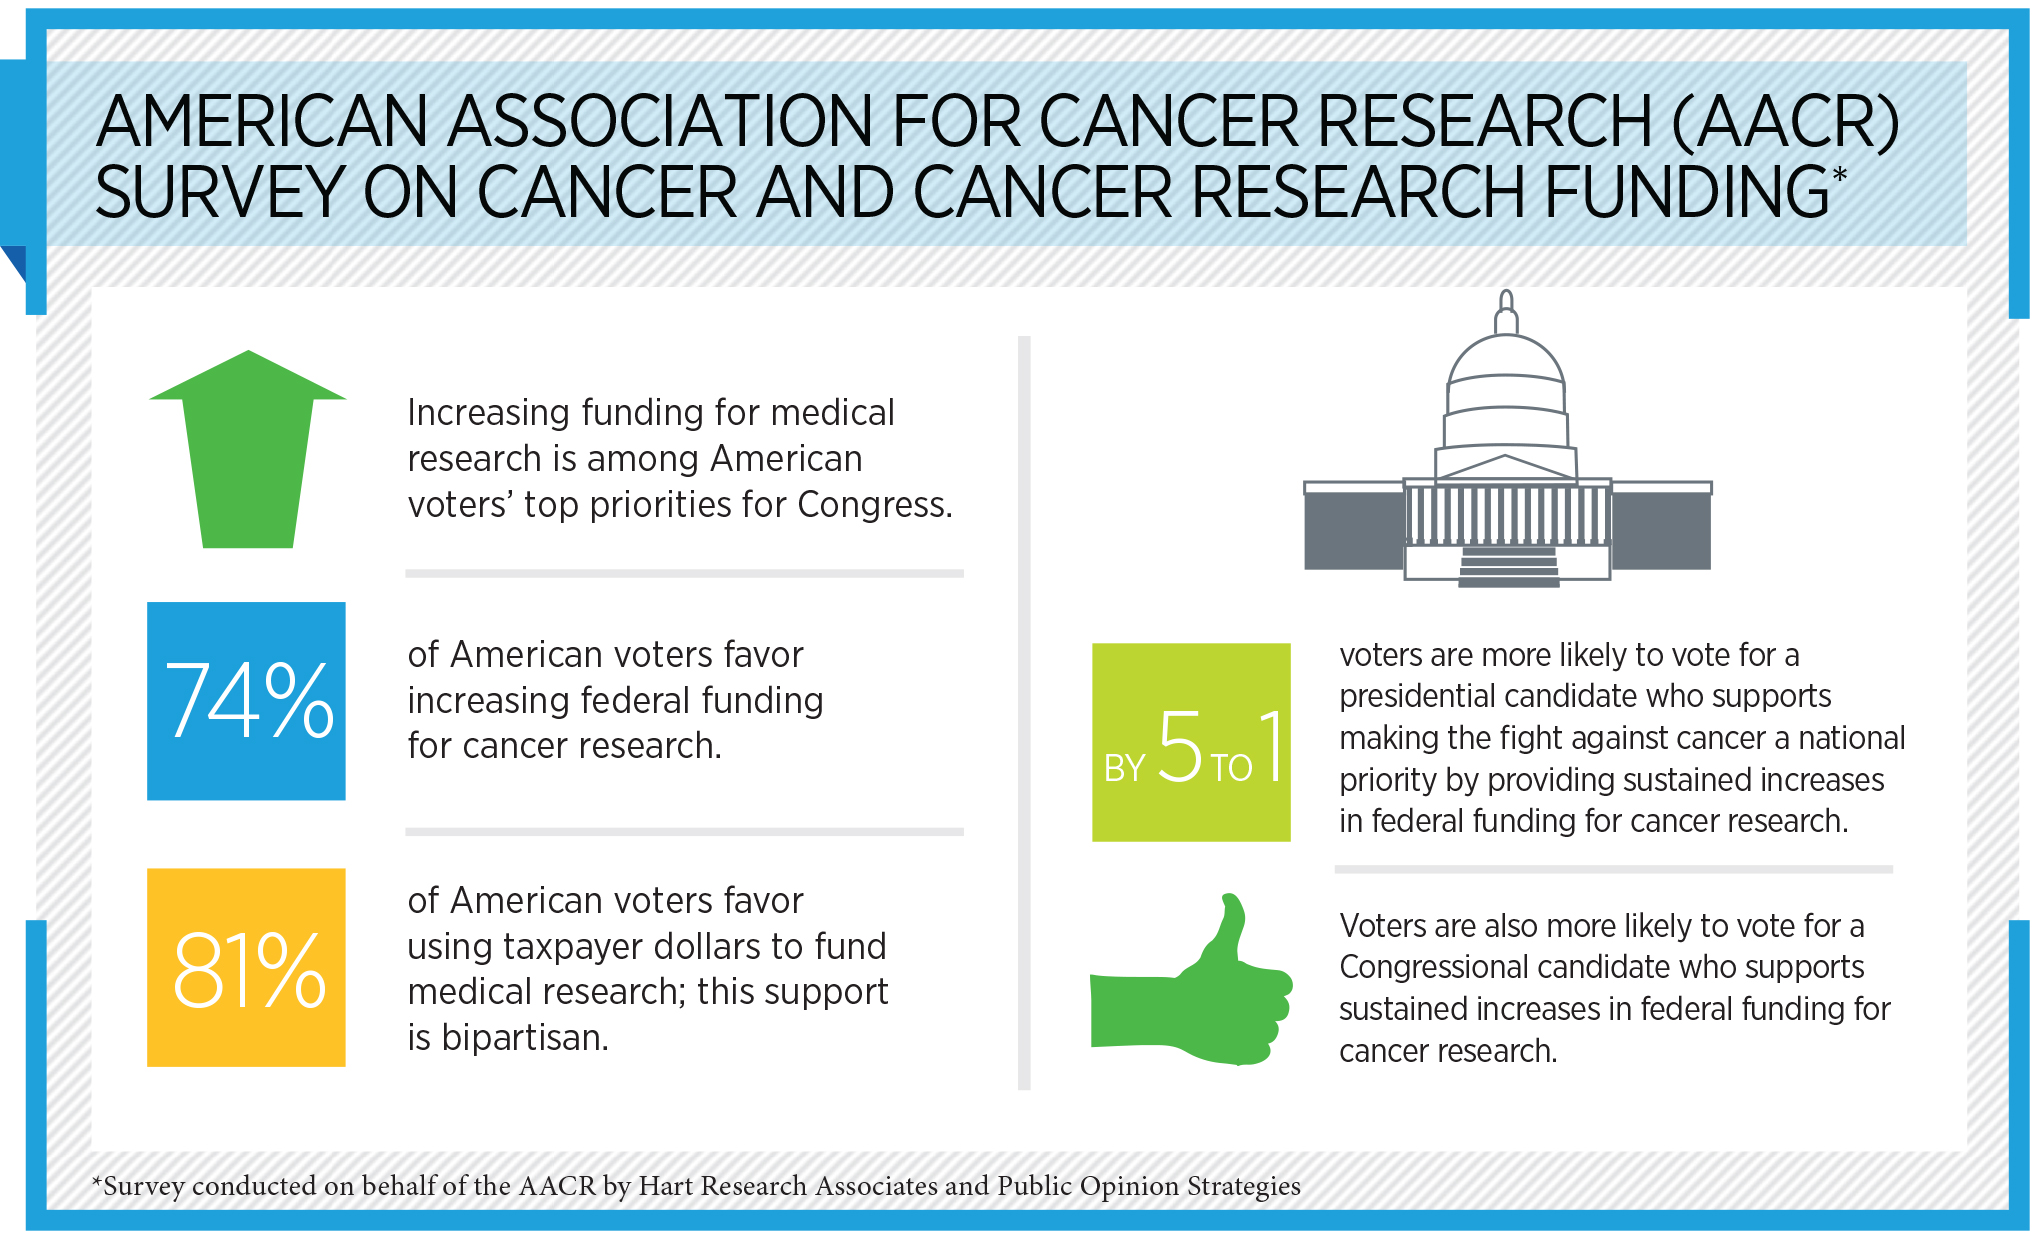 AACR Survey on Cancer and Cancer Research Funding